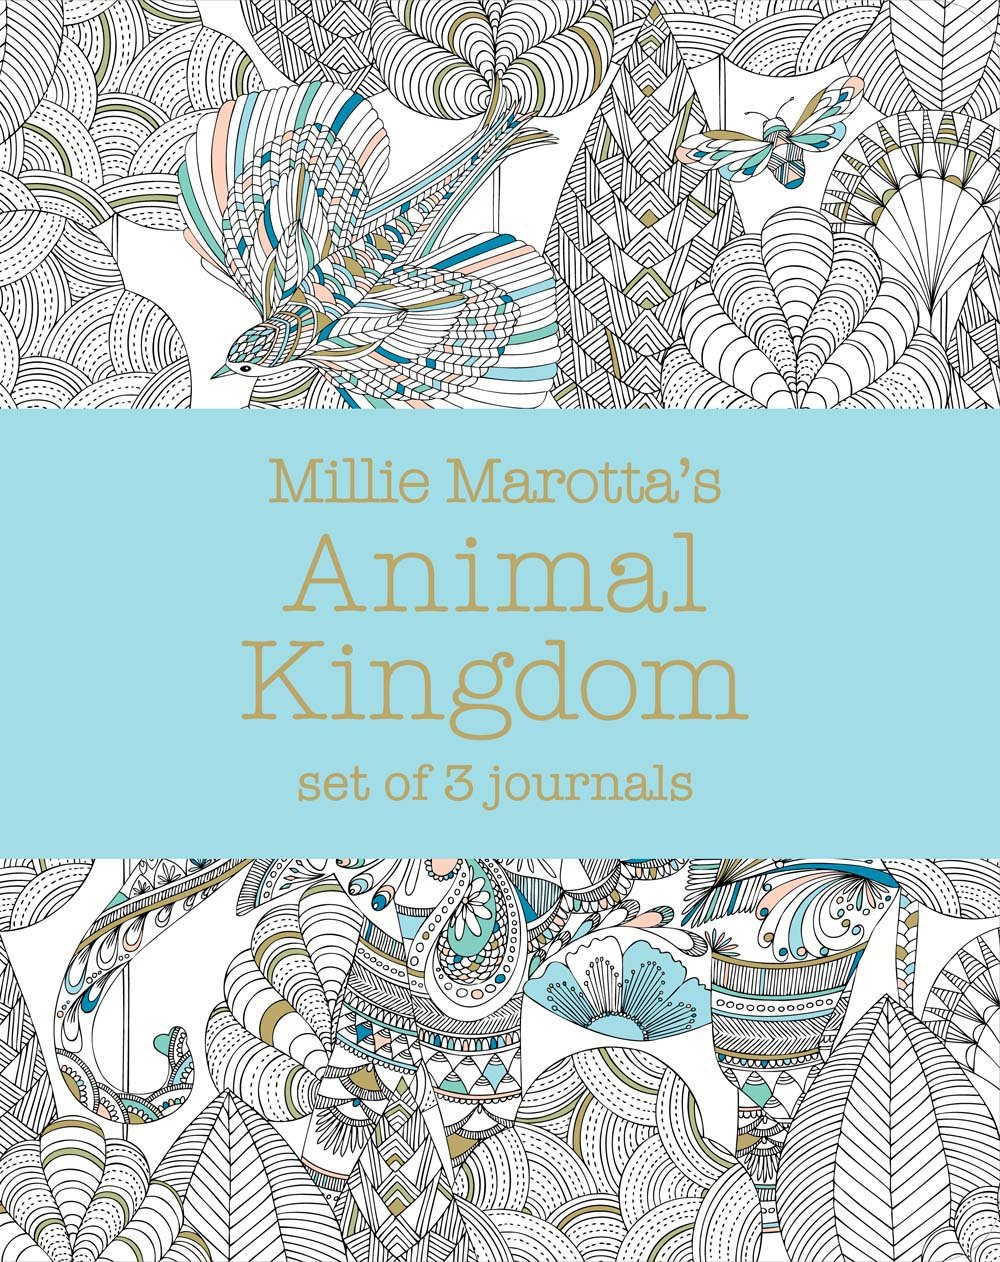 Coloring book animal kingdom - Amazon Com Millie Marotta S Animal Kingdom Set Of 3 Journals A Millie Marotta Adult Coloring Book 9781454709237 Millie Marotta Books